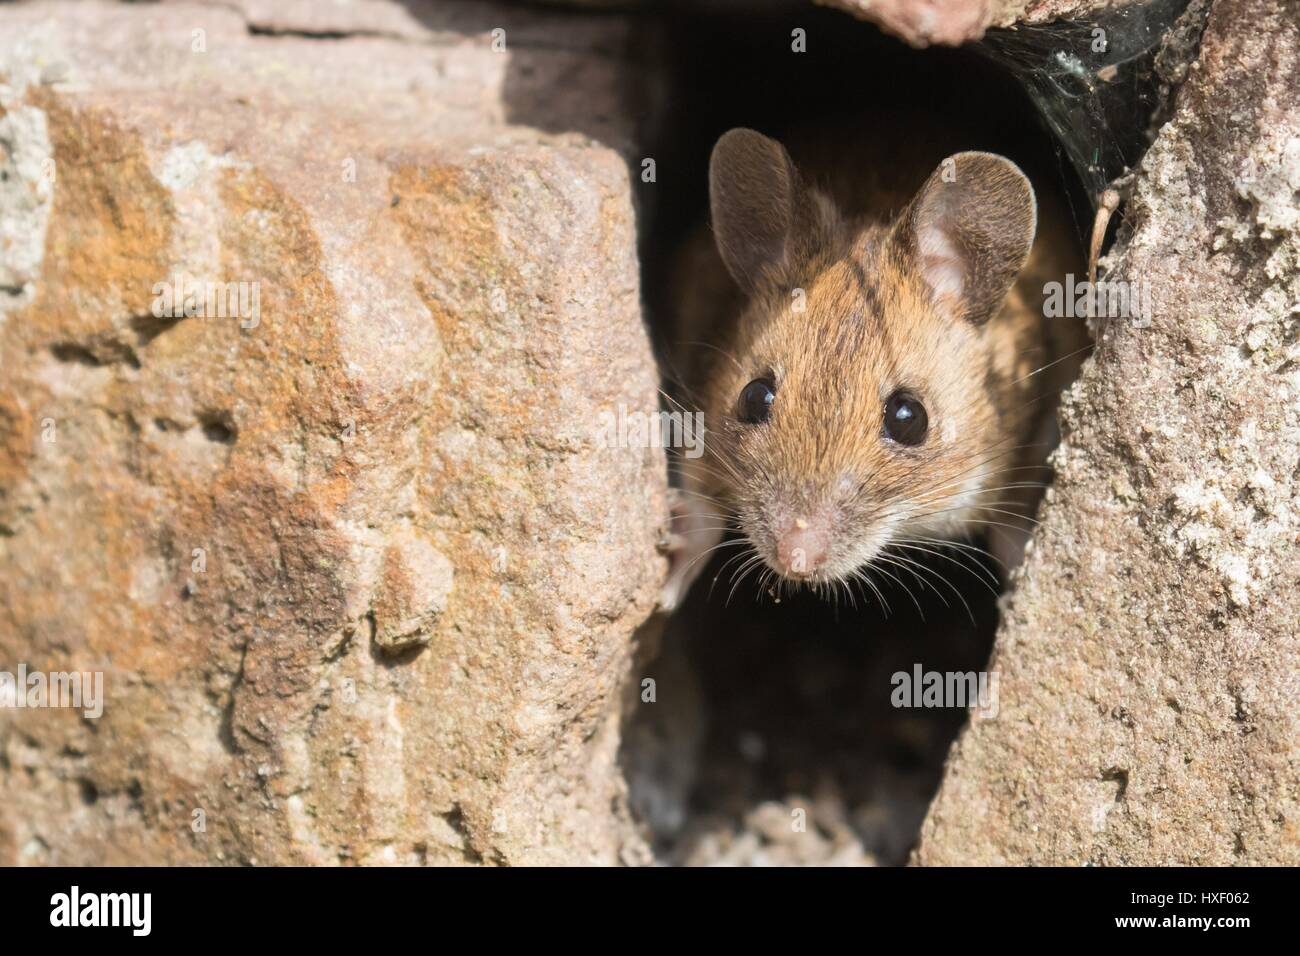 House mouse (Mus musculus) looking out of a hole in stone wall, Germany - Stock Image